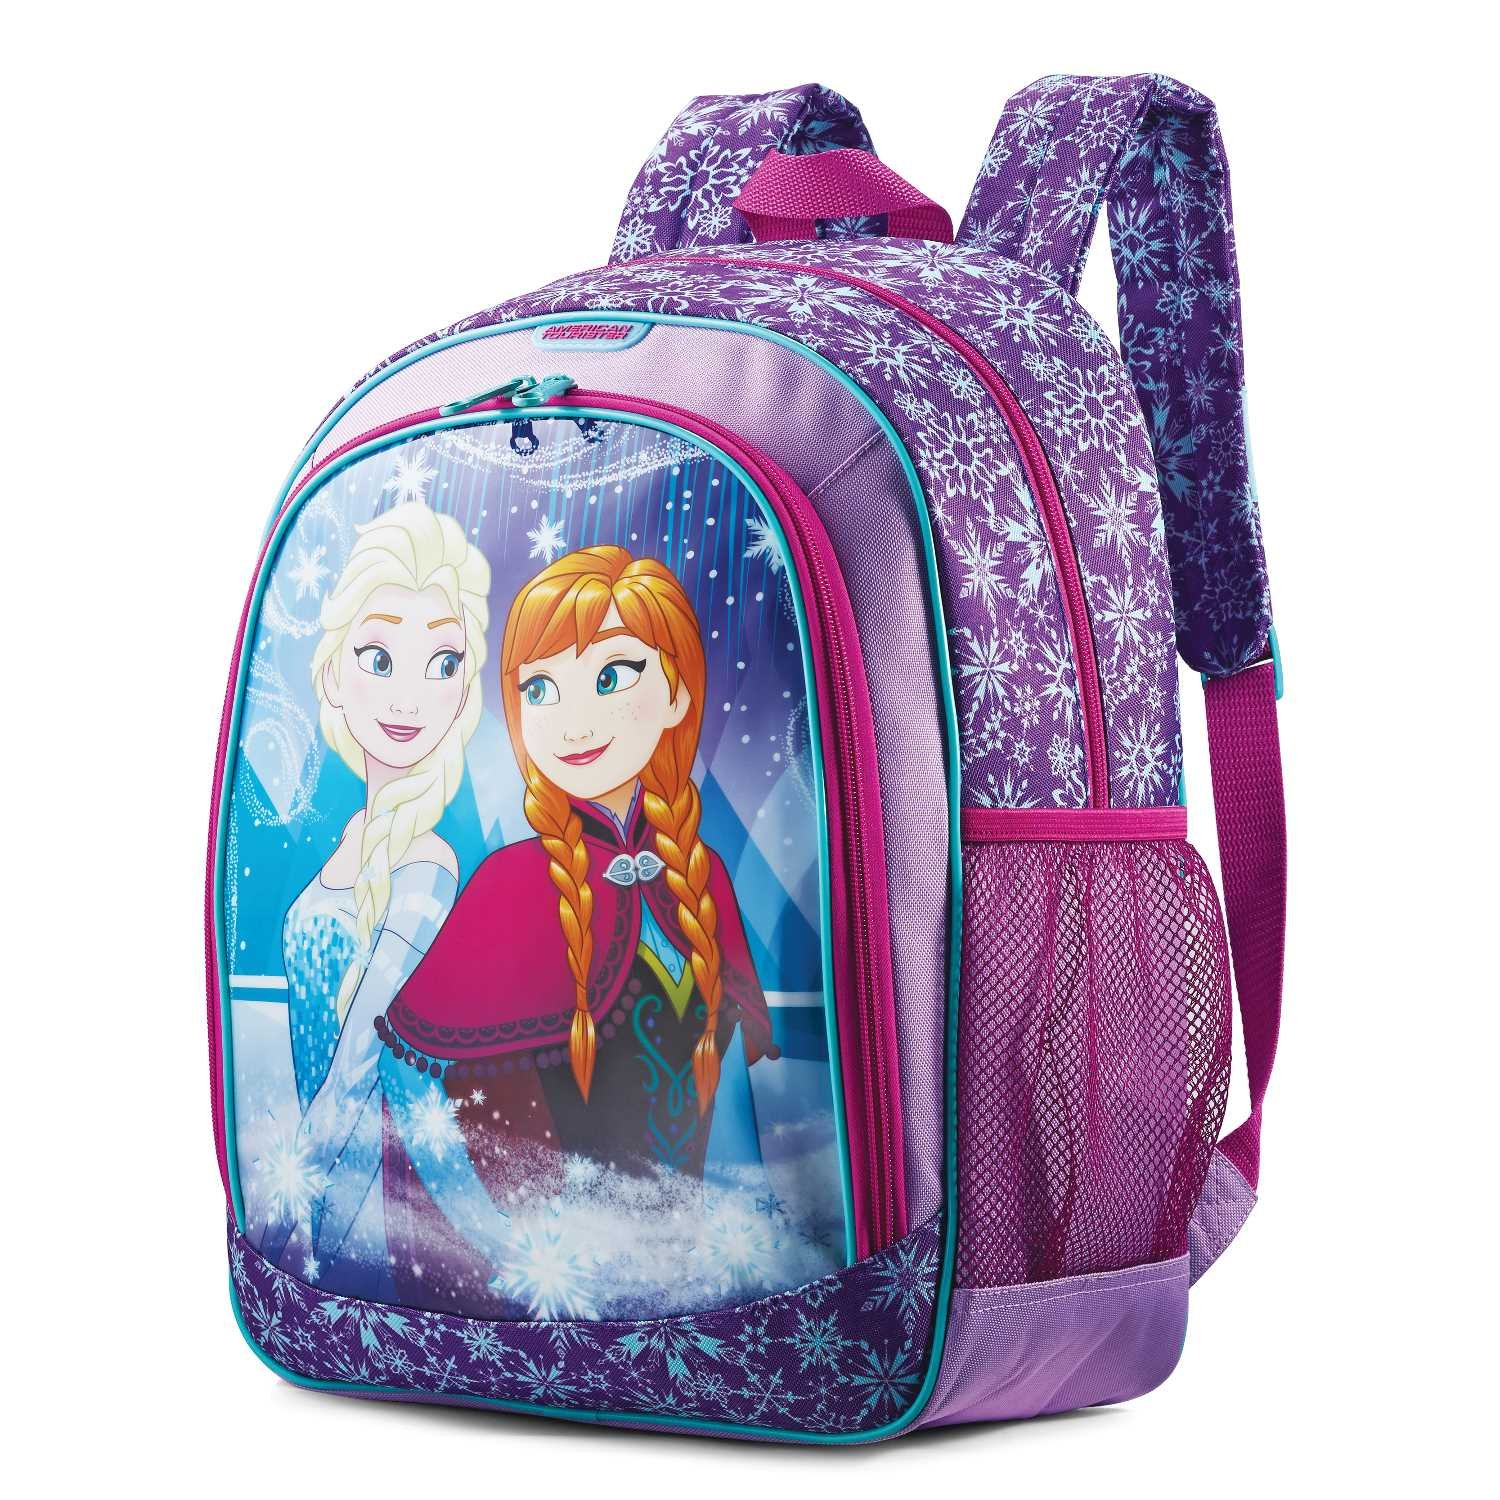 American Tourister Kids' Disney Children's Backpack, Disney Frozen